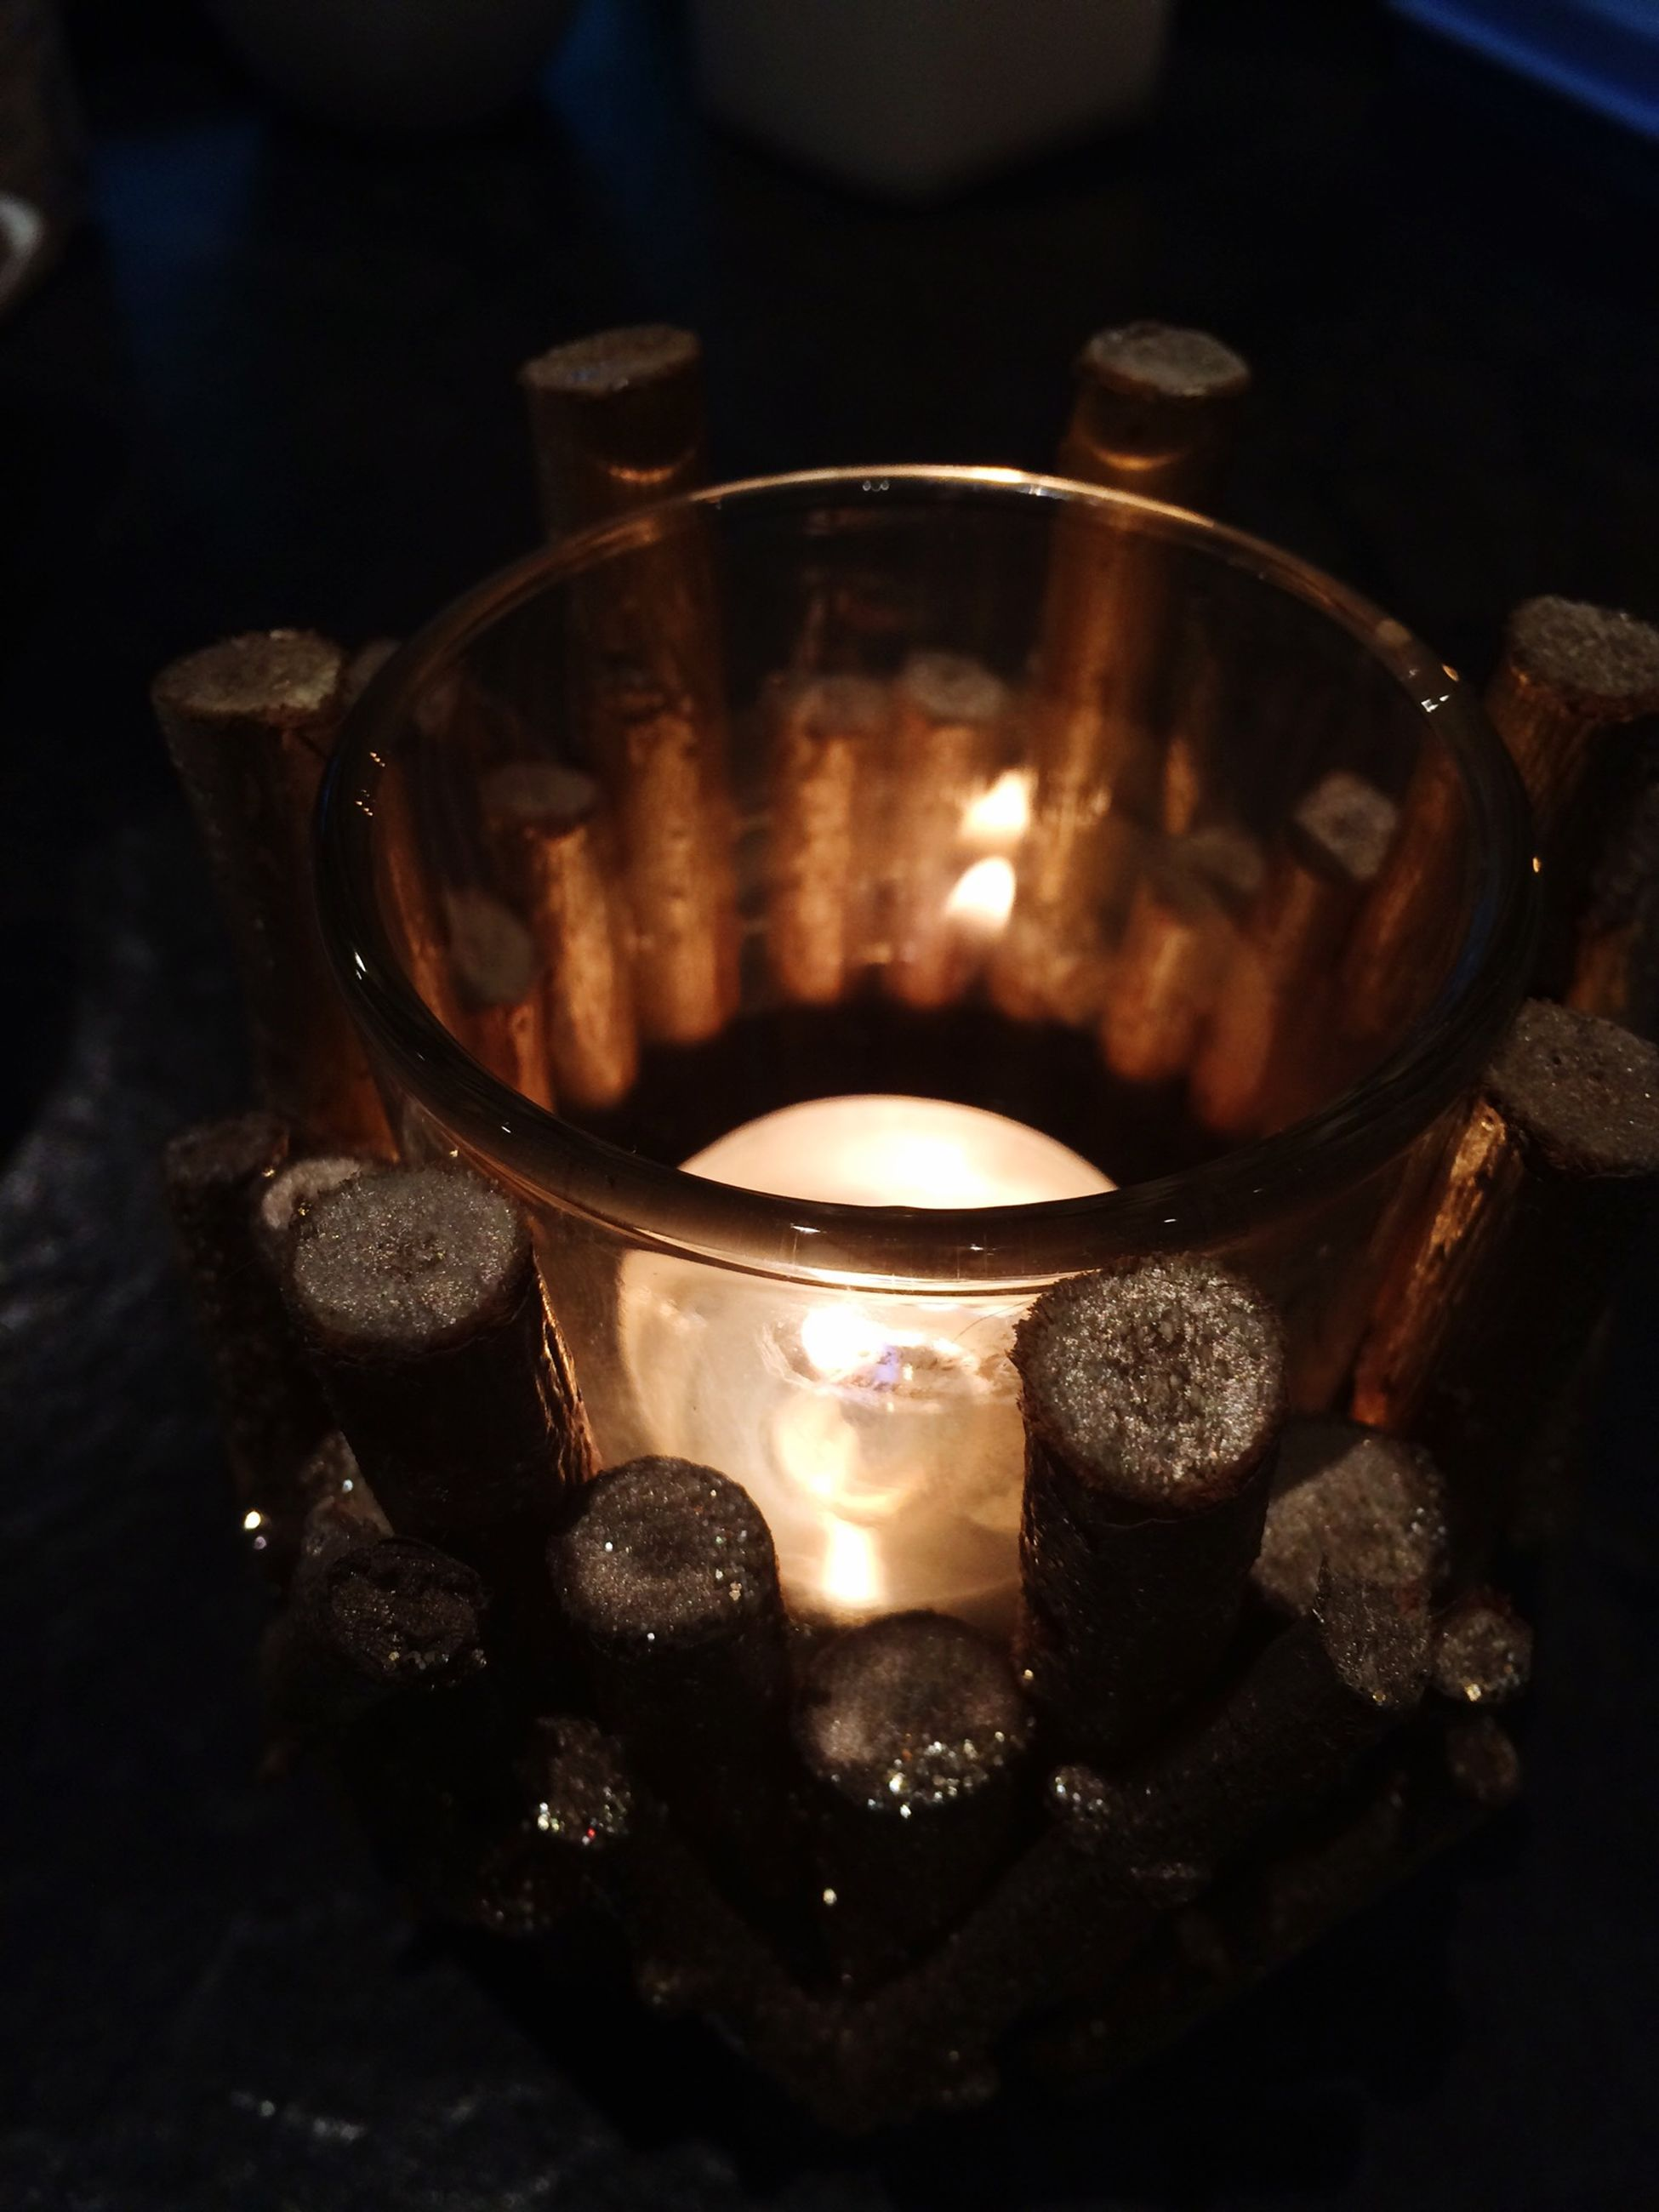 indoors, flame, burning, heat - temperature, candle, food and drink, fire - natural phenomenon, close-up, still life, drink, table, glowing, lit, refreshment, glass - material, freshness, high angle view, candlelight, illuminated, fire